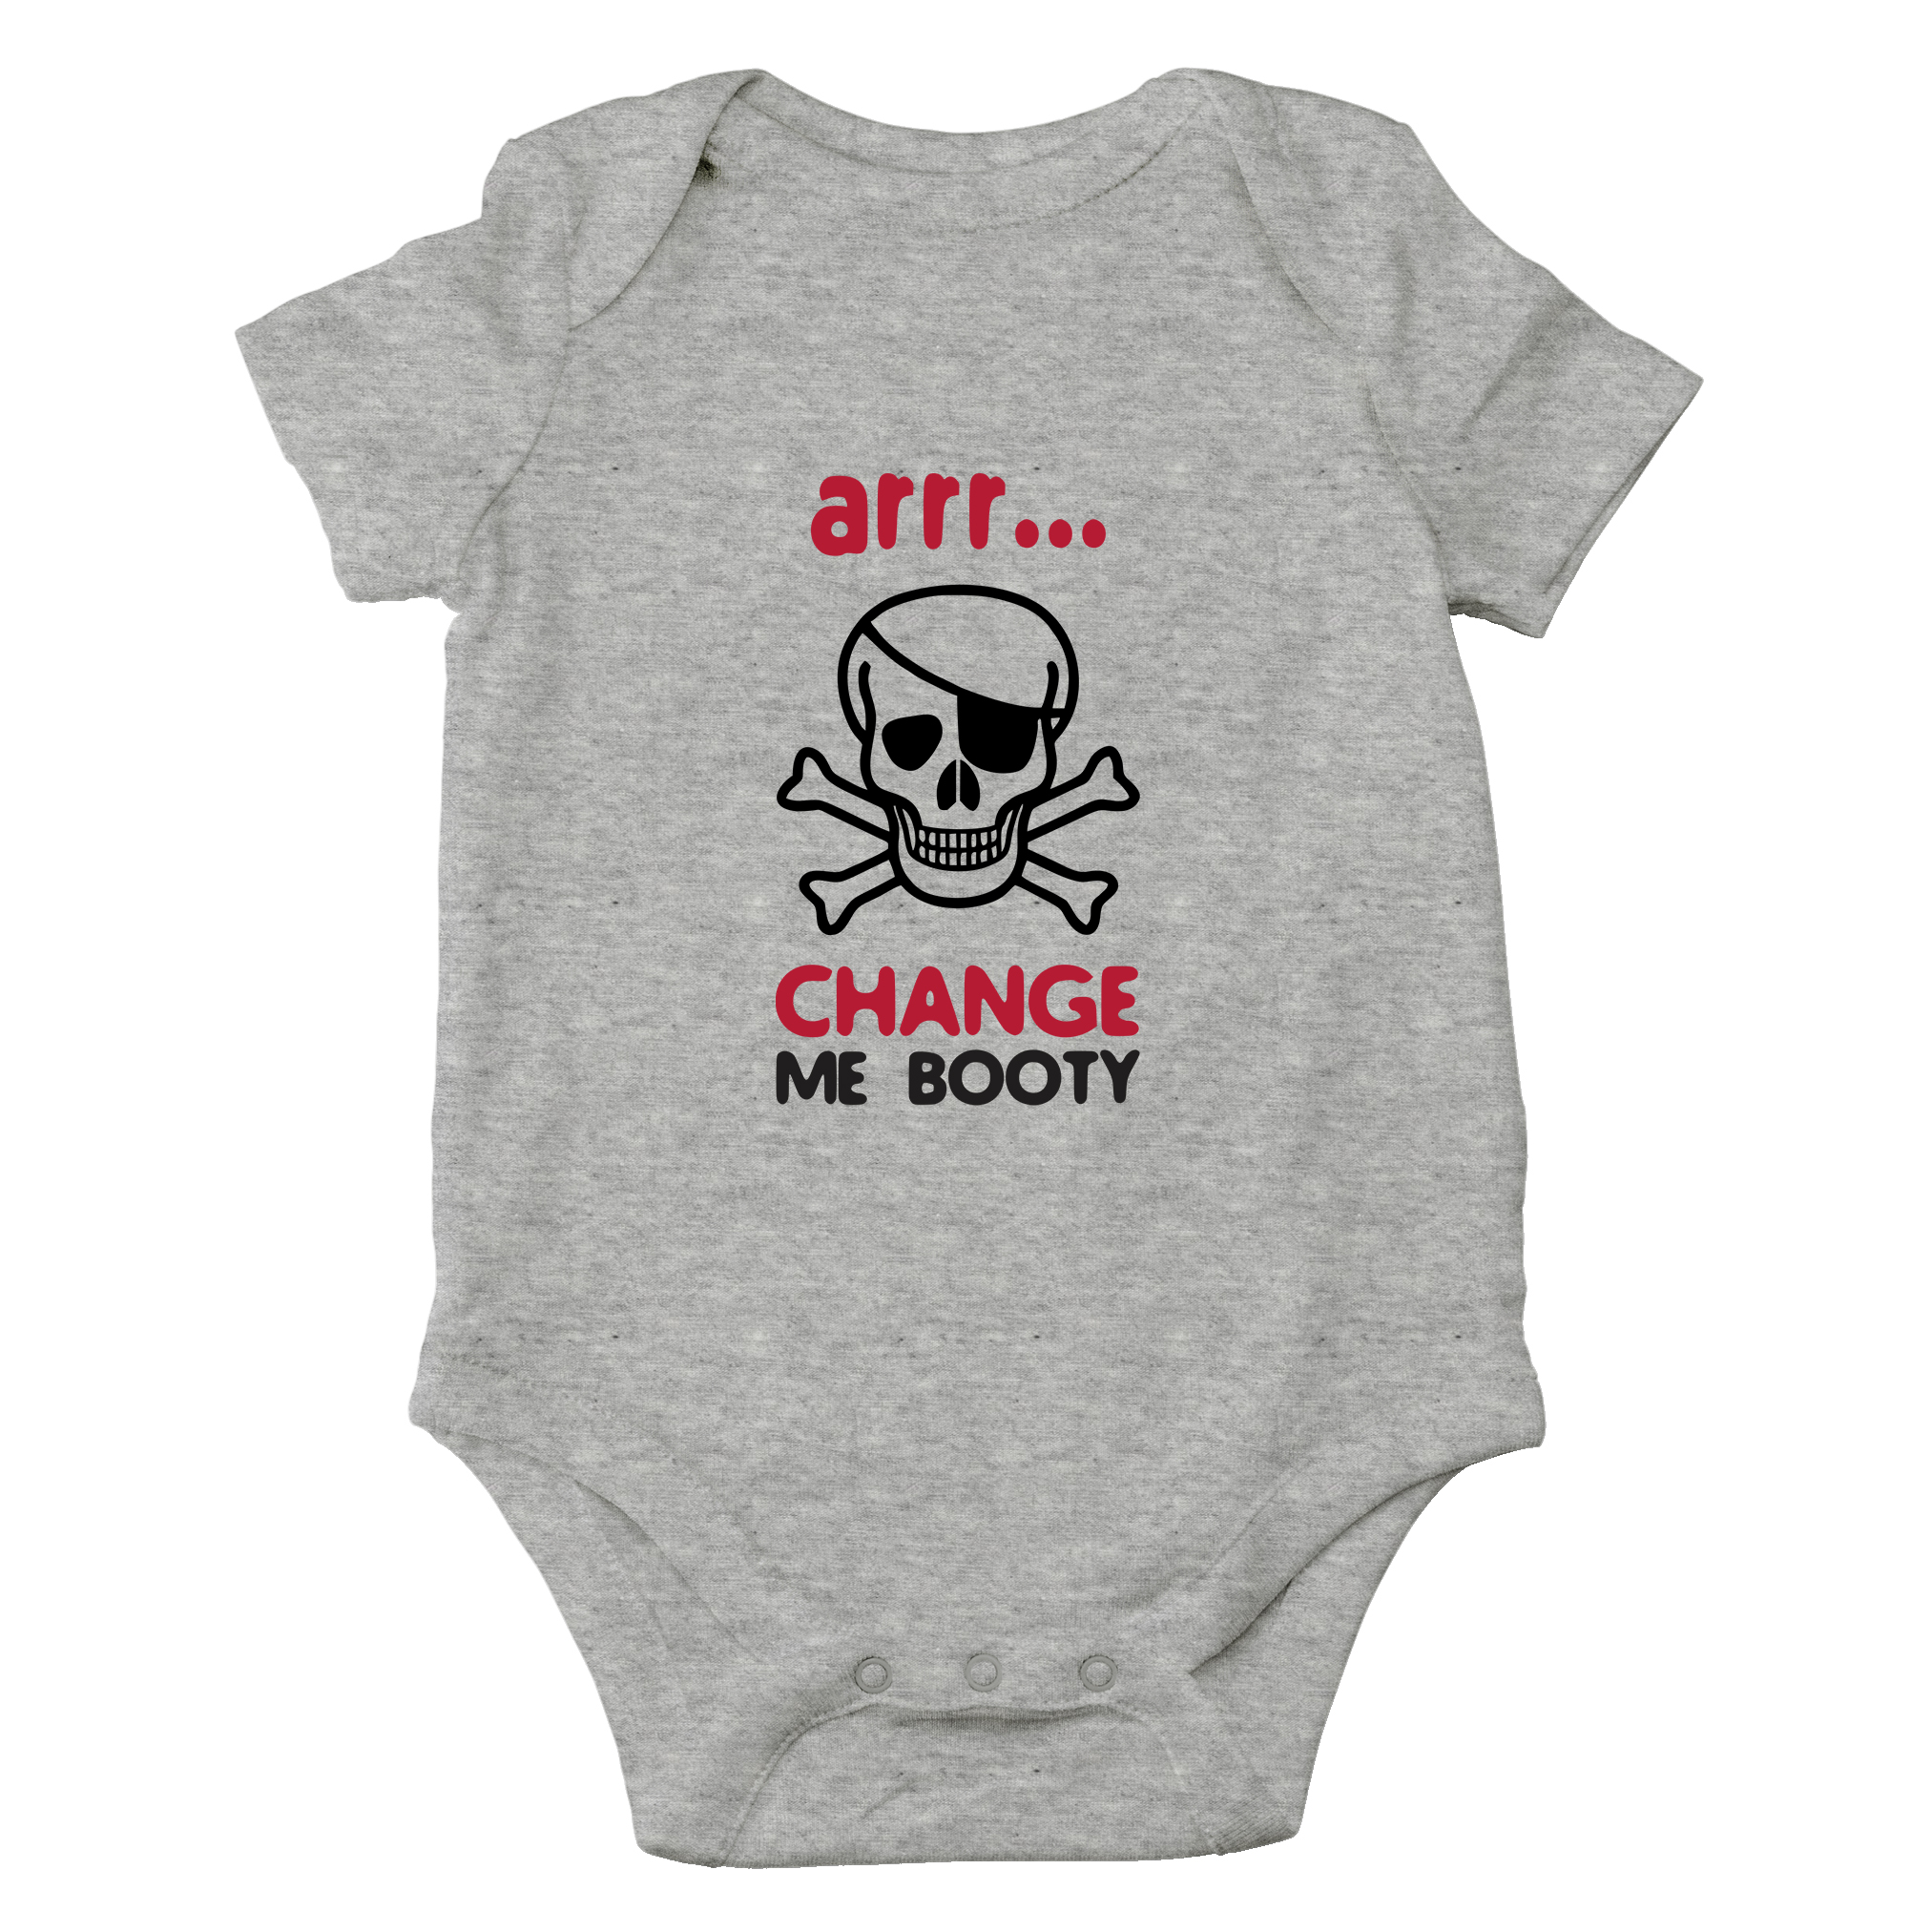 Baby Musical Humor Bodysuit Baby Gift Three Snap Bodysuit One Piece Baby Romper After Party At My Crib with Eco Friendly Retro Graphic